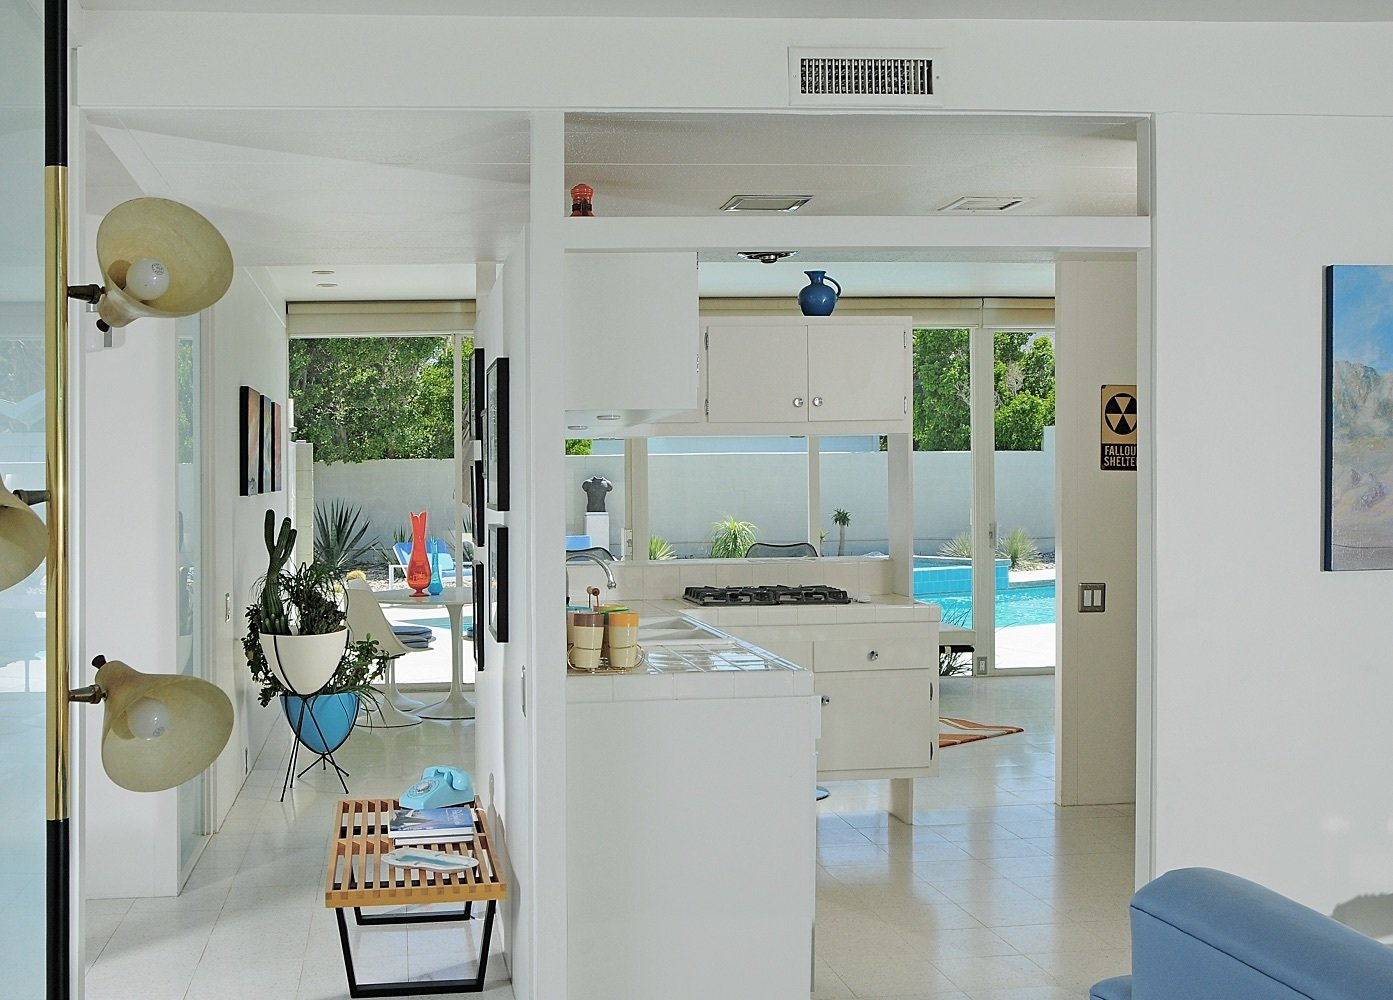 The kitchen was restored in 2001 following guidelines from its original configuration.